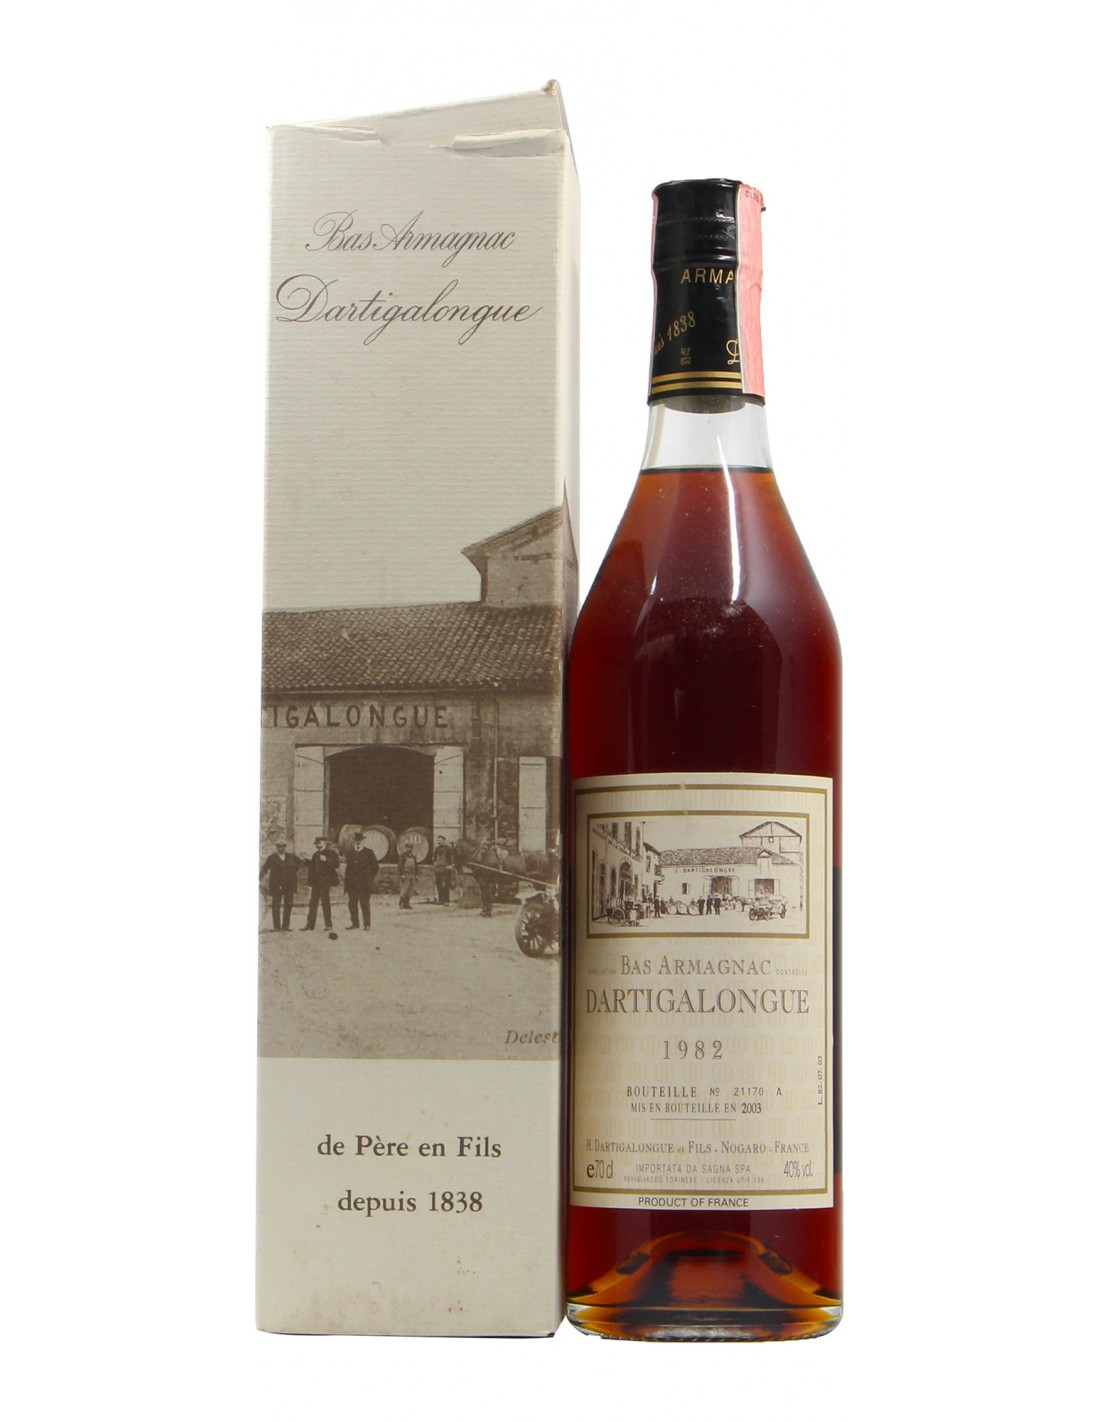 BAS ARMAGNAC 1982 DARTIGALONGUE GRANDI BOTTIGLIE